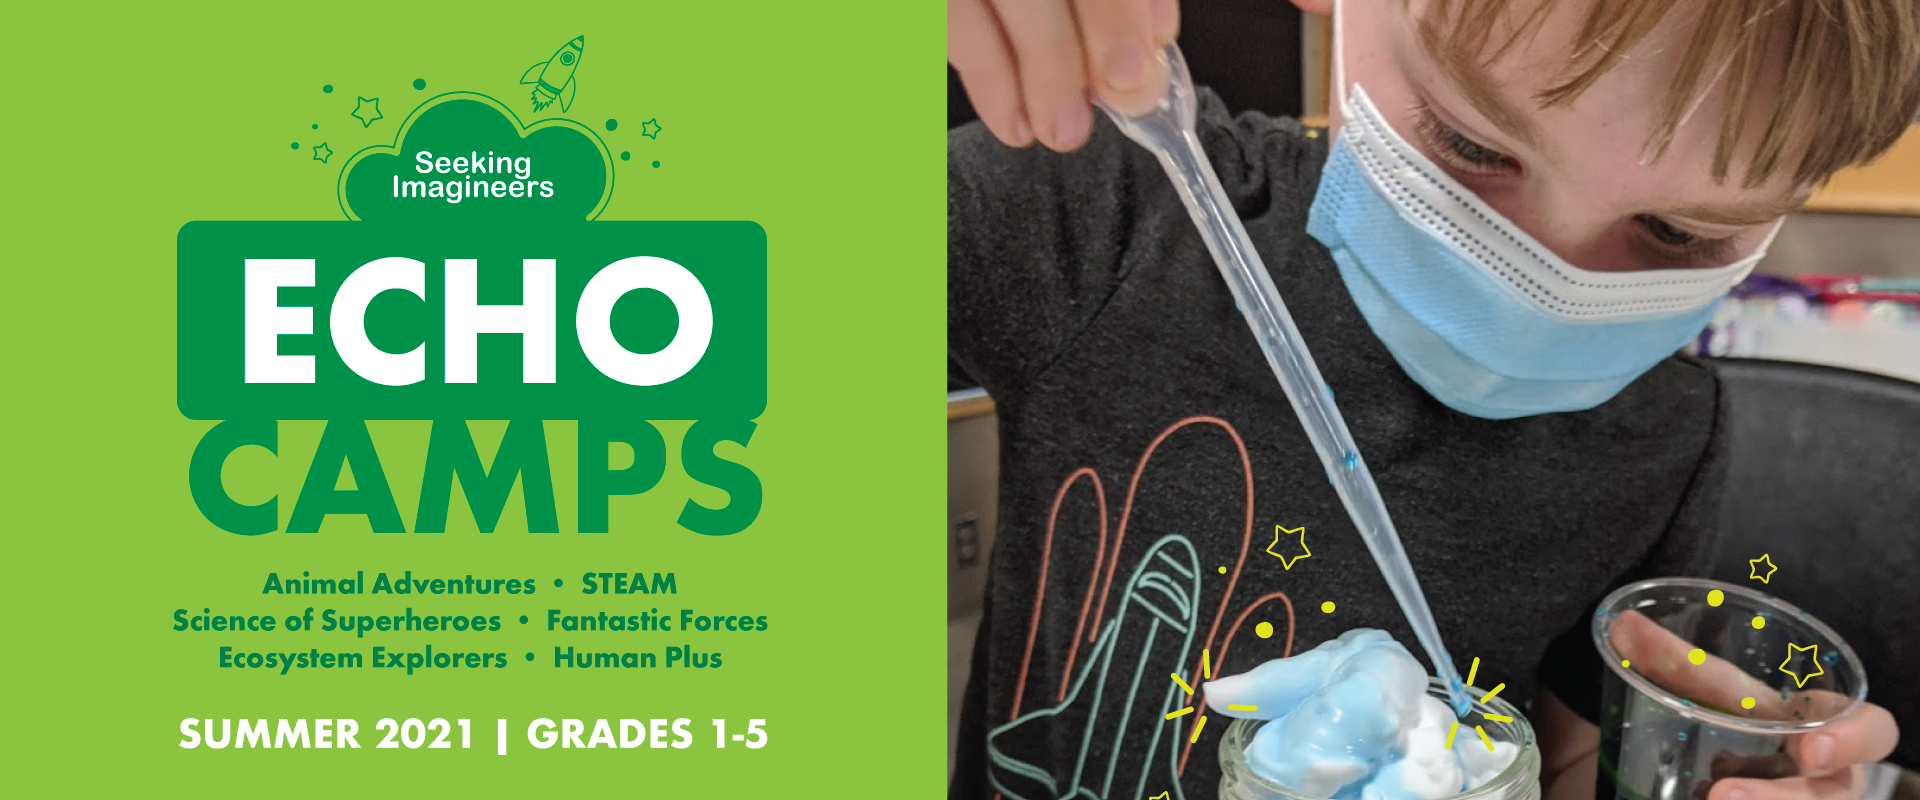 ECHO Camps for Summer 2021, Grades 1-5. One side is green; the other side has a boy with a face masks dropping color on to shaving cream as an experiment.